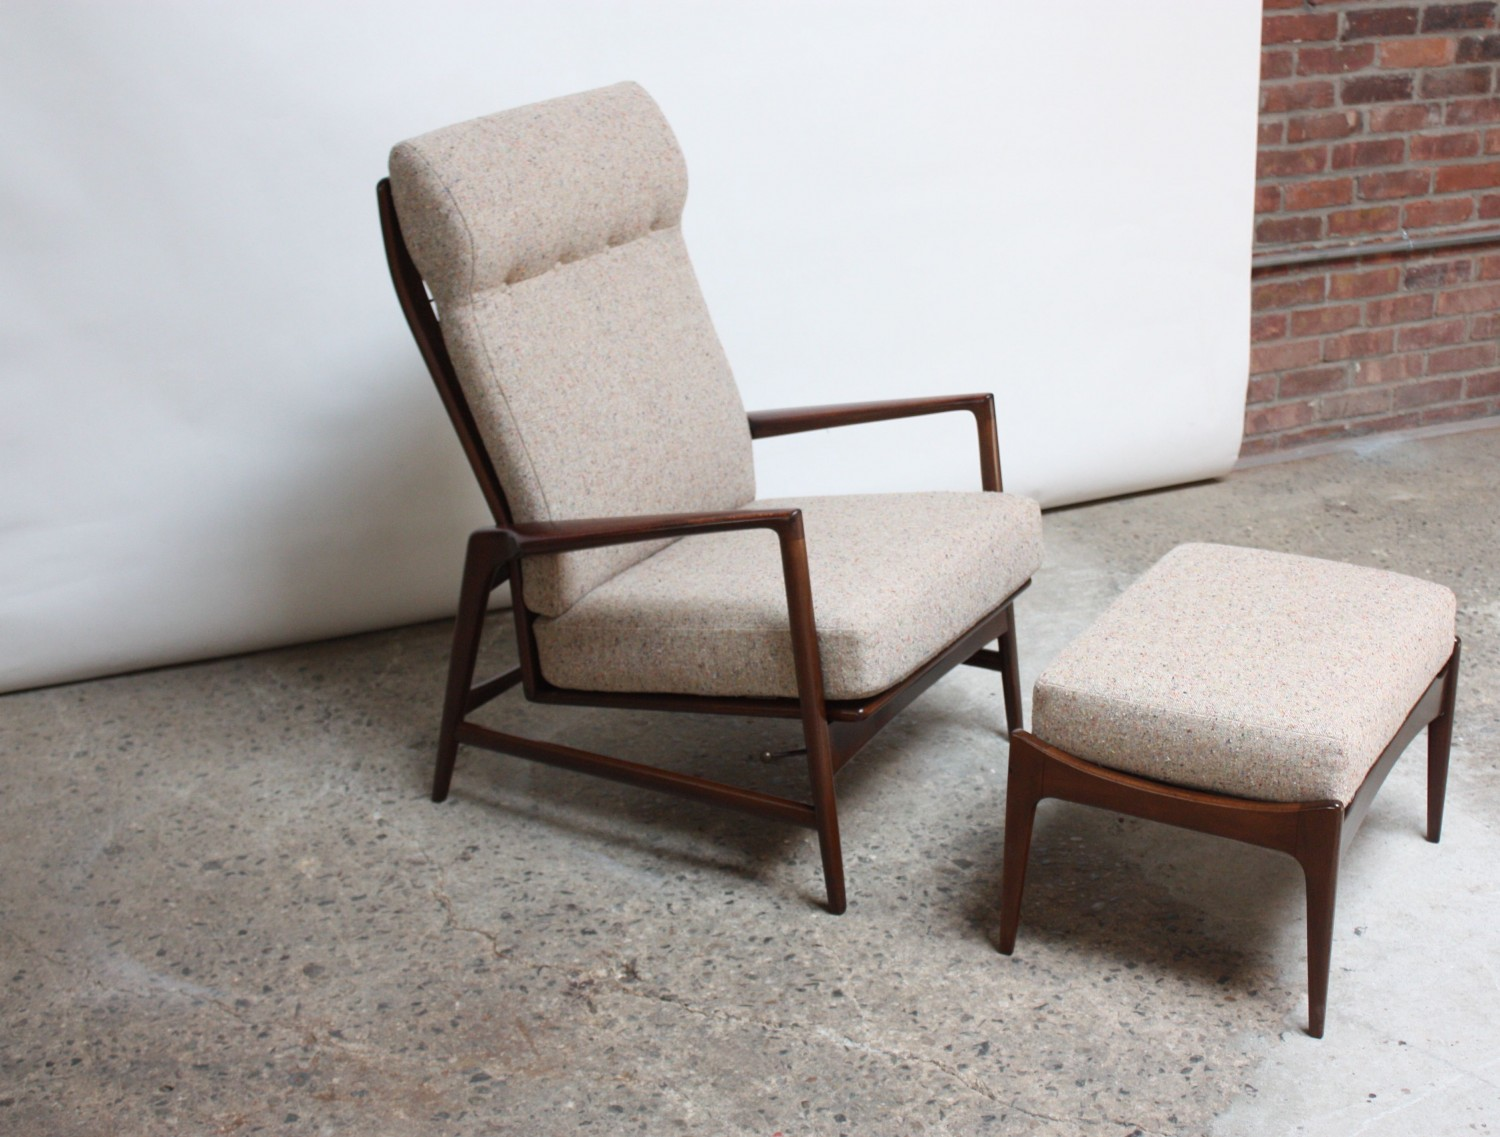 Selig Chair Reclining Lounge Chair And Ottoman By Ib Kofod Larsen For Selig